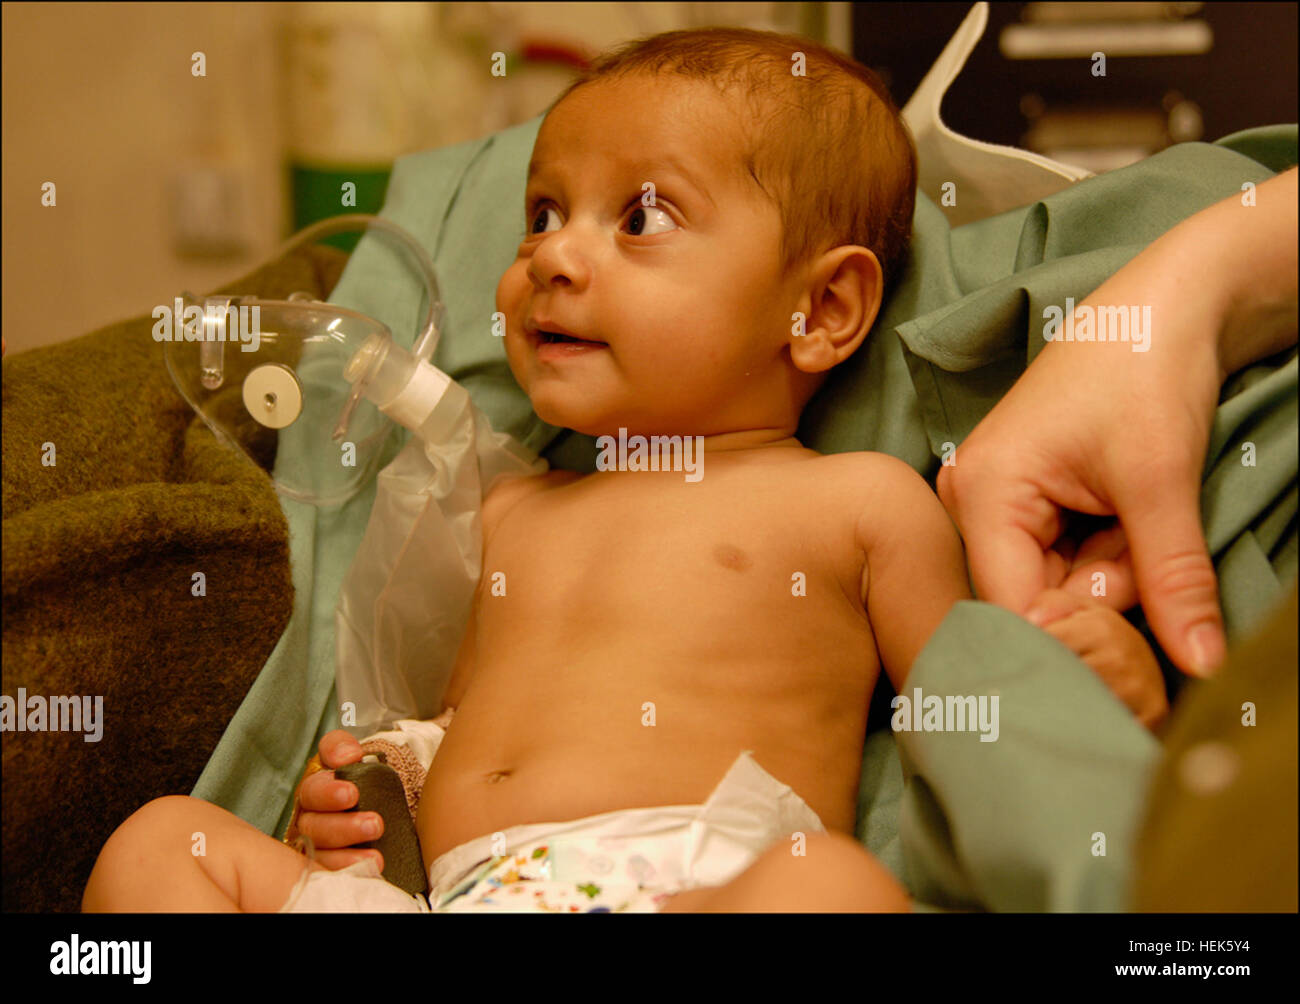 4 Month Old Boy Stock Photos & 4 Month Old Boy Stock Images - Alamy